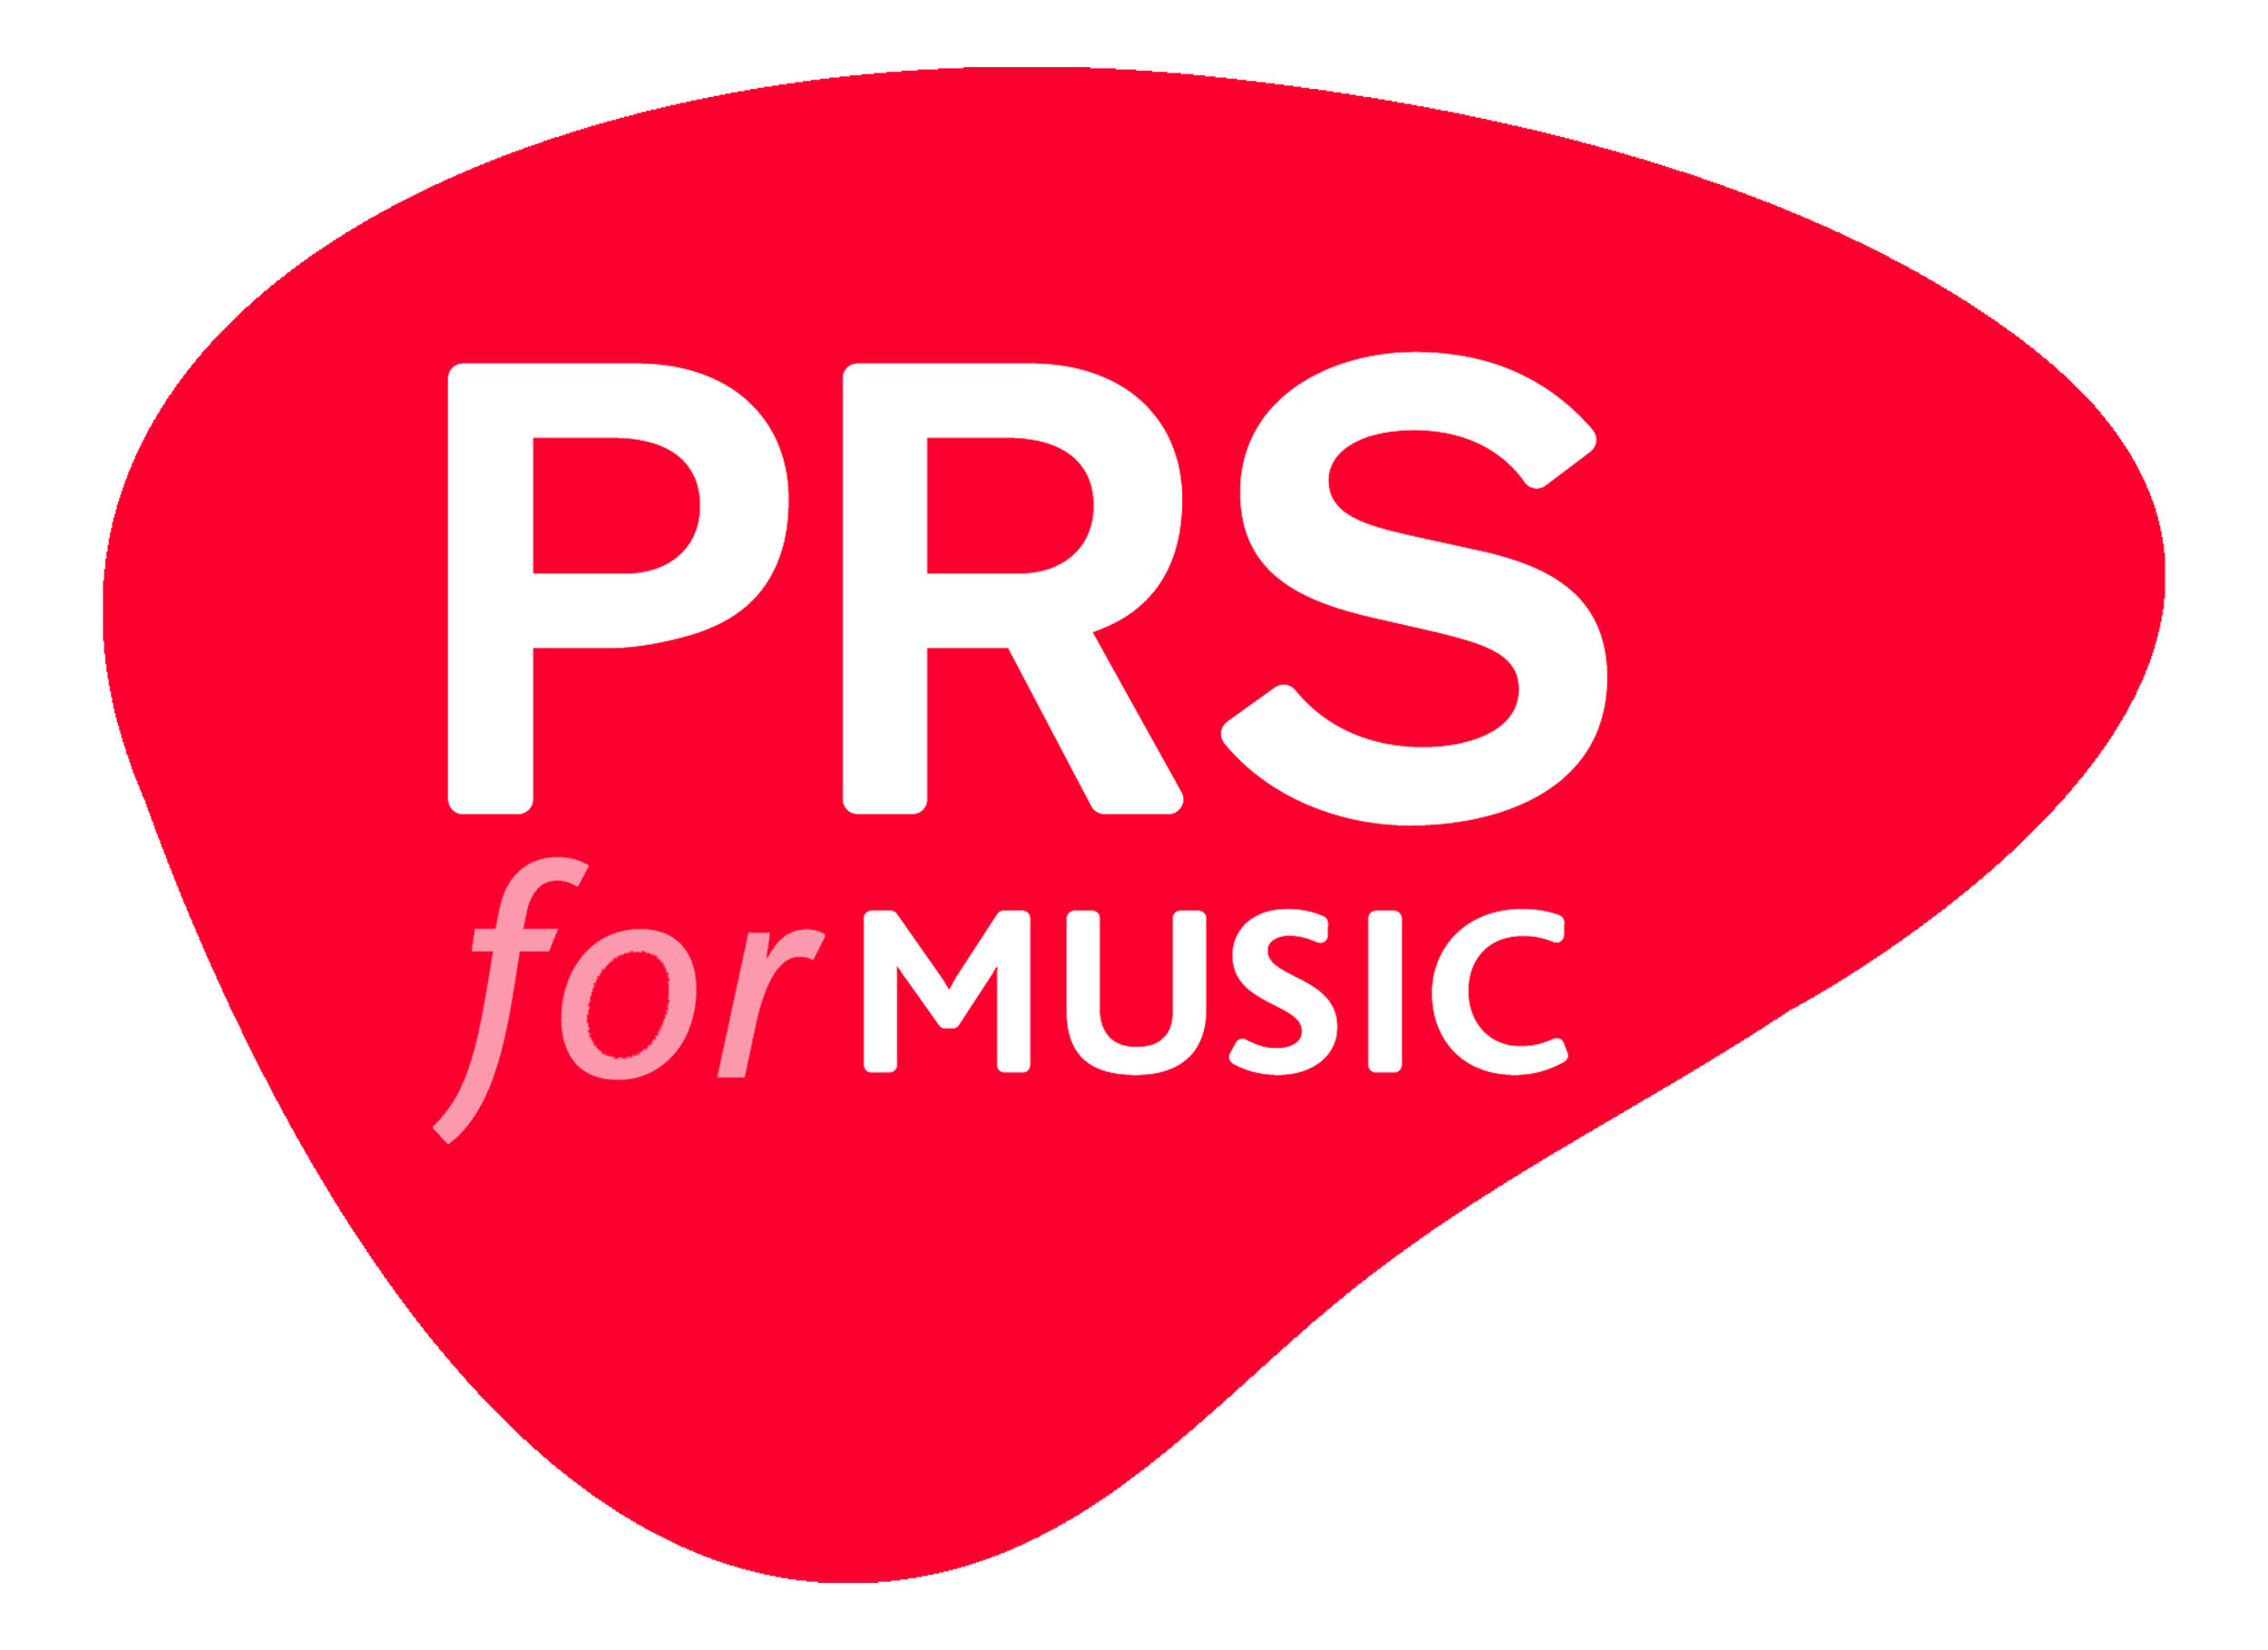 PRS for Music PMS185 large format.jpg